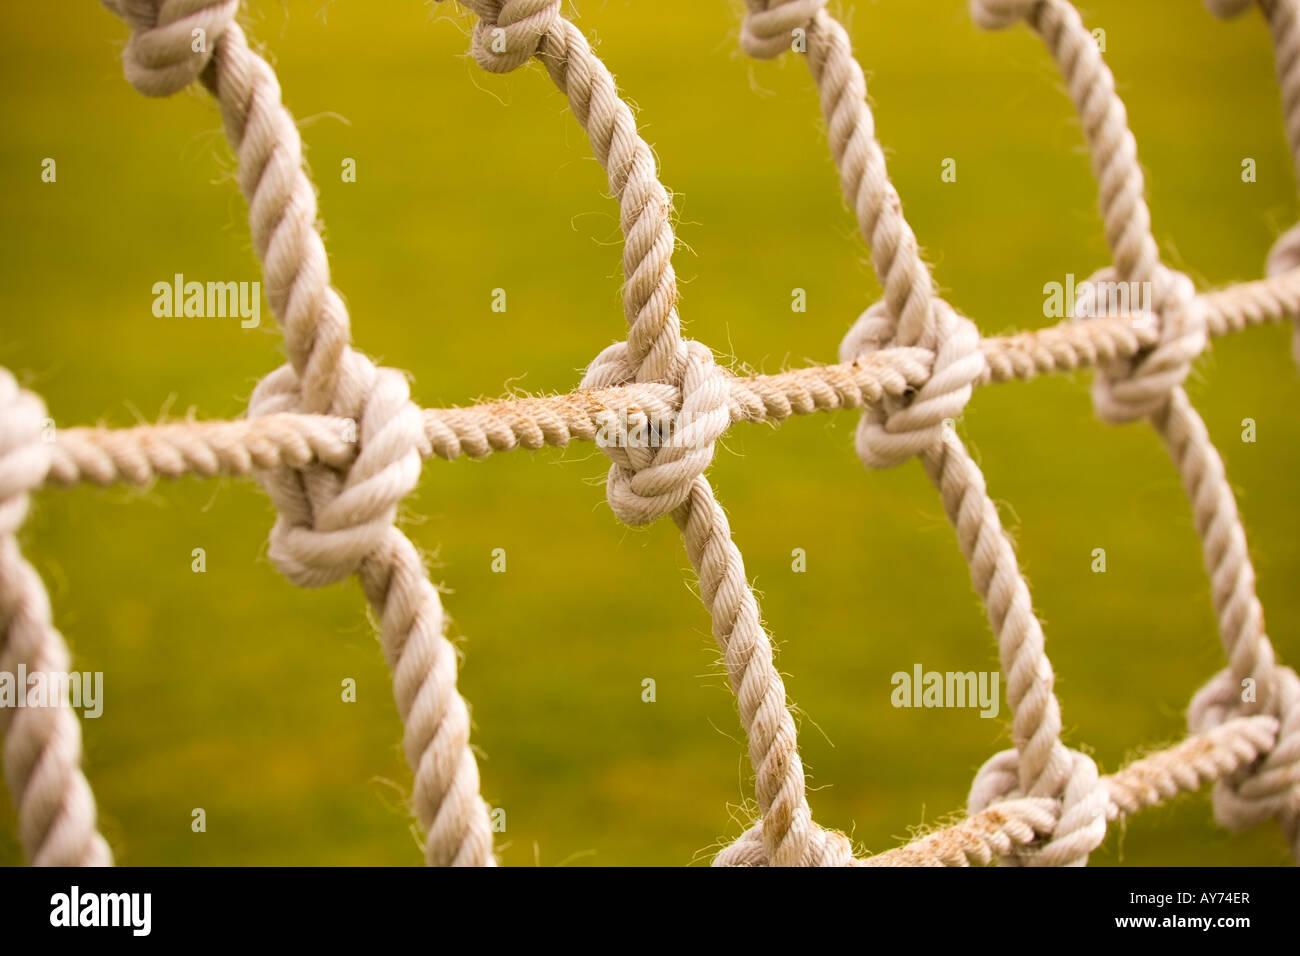 A knotted rope net - Stock Image